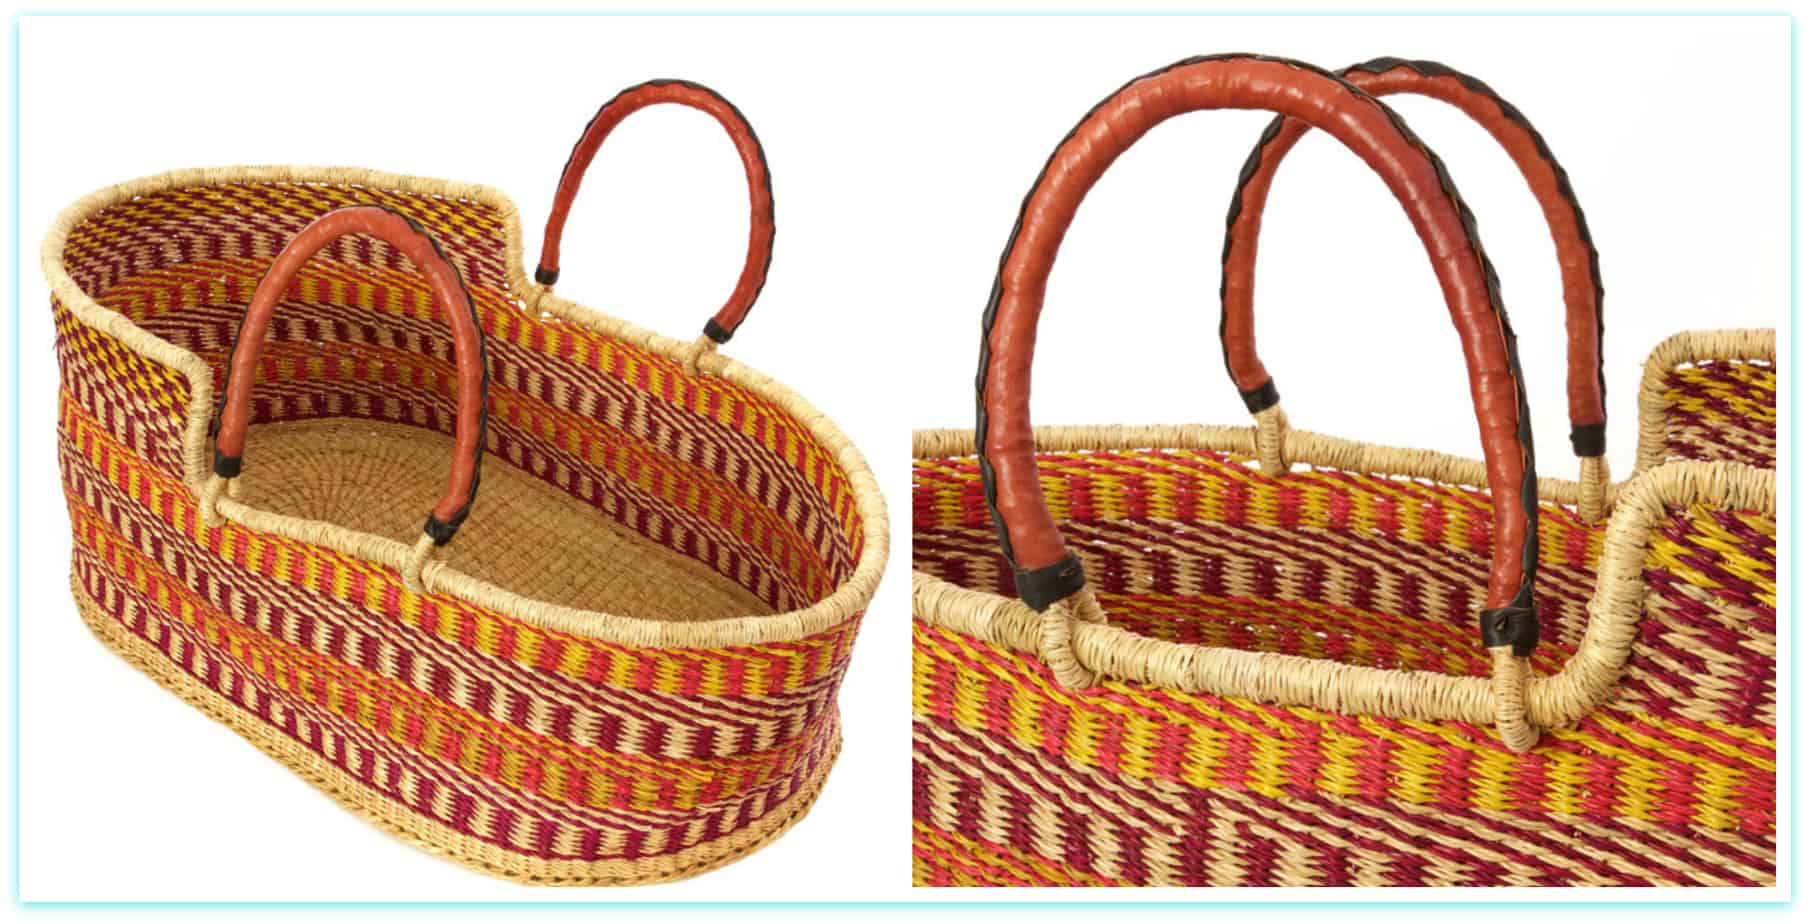 African Woven Hamper Moses Basket Ghana West Africa Laundry Shoppe